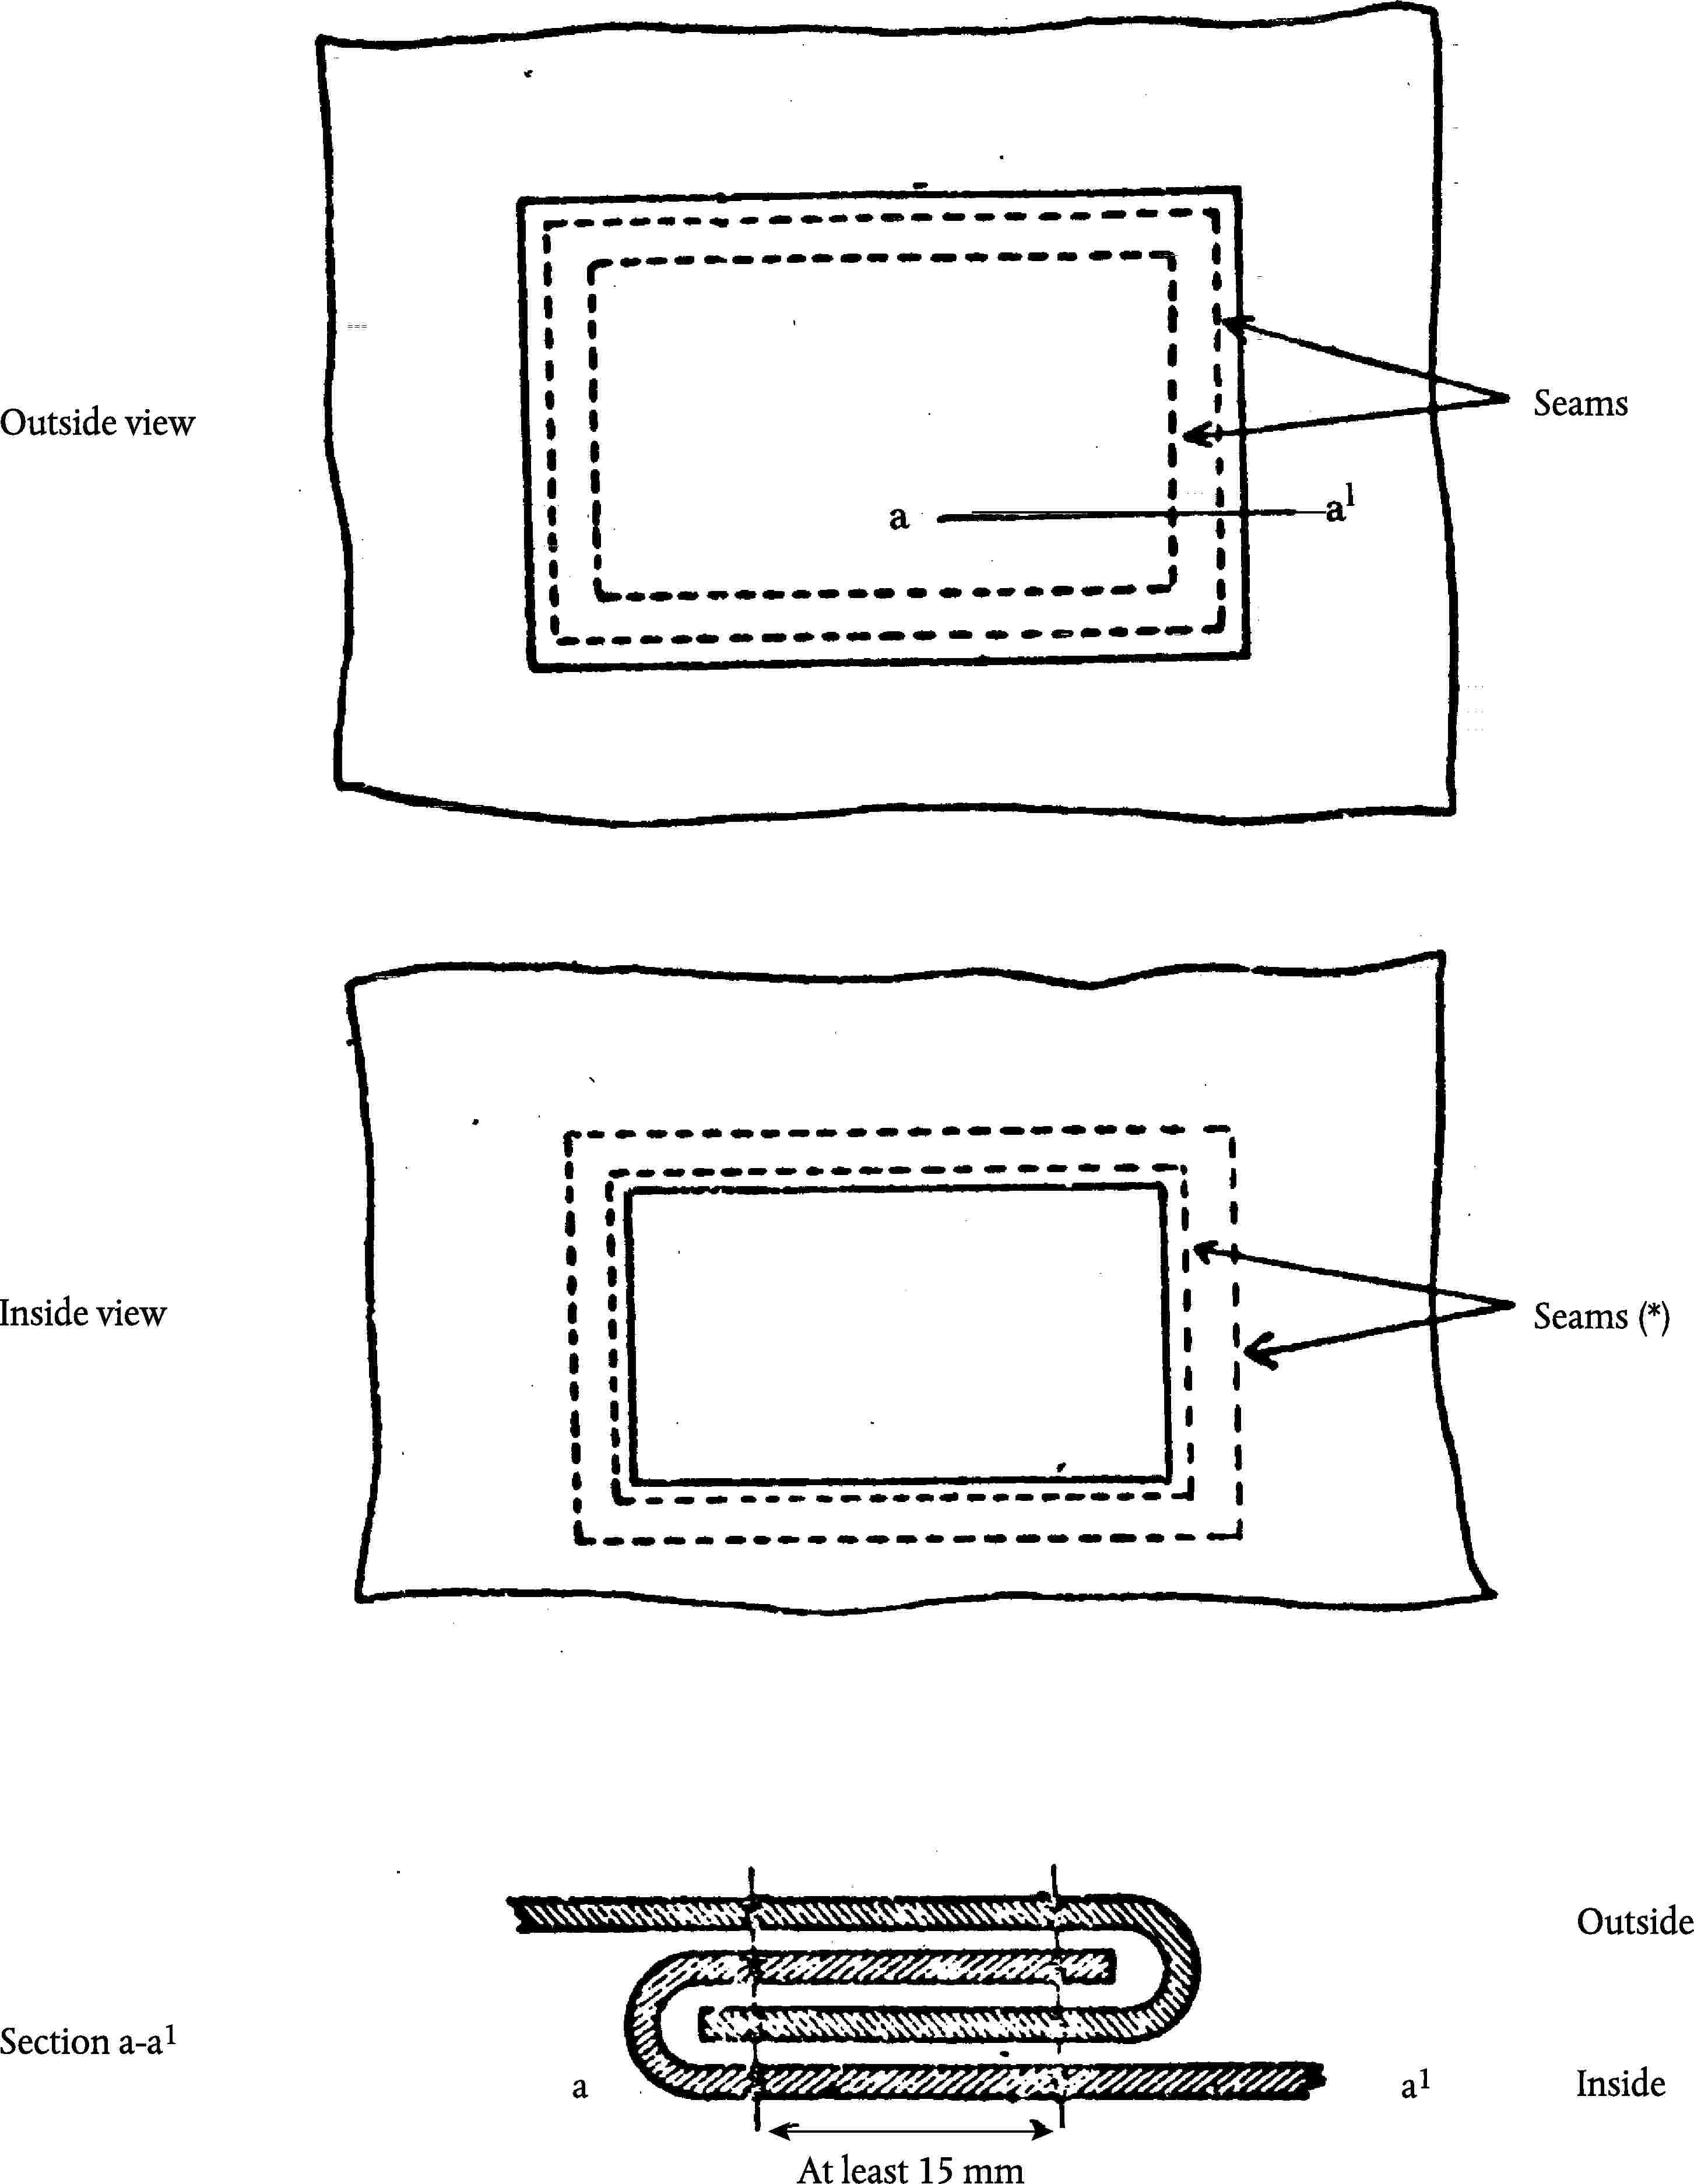 Eur Lex 01976r3237 19820101 Mt Device For Use In Folding Fitted Sheets Diagram And Image Sketch No 4